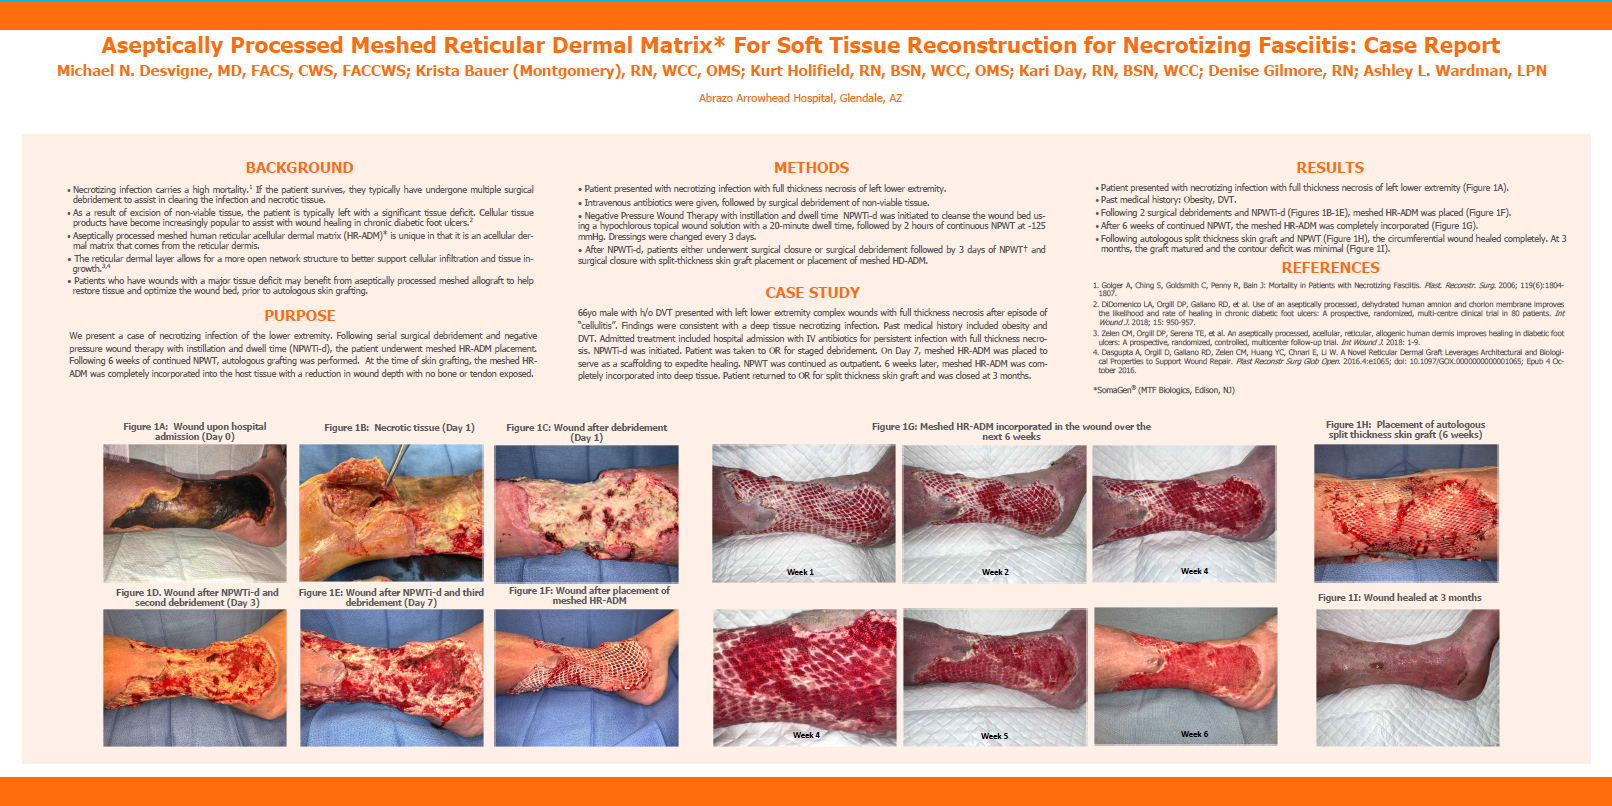 Desvigne M., Bauer K., Holifield K., Day K., Gilmore D., Wardman A. Aseptically Processed Meshed Reticular Dermal Matrix* For Soft Tissue Reconstruction for Necrotizing Fasciitis: Case Report. SAWC 2020 Fall.